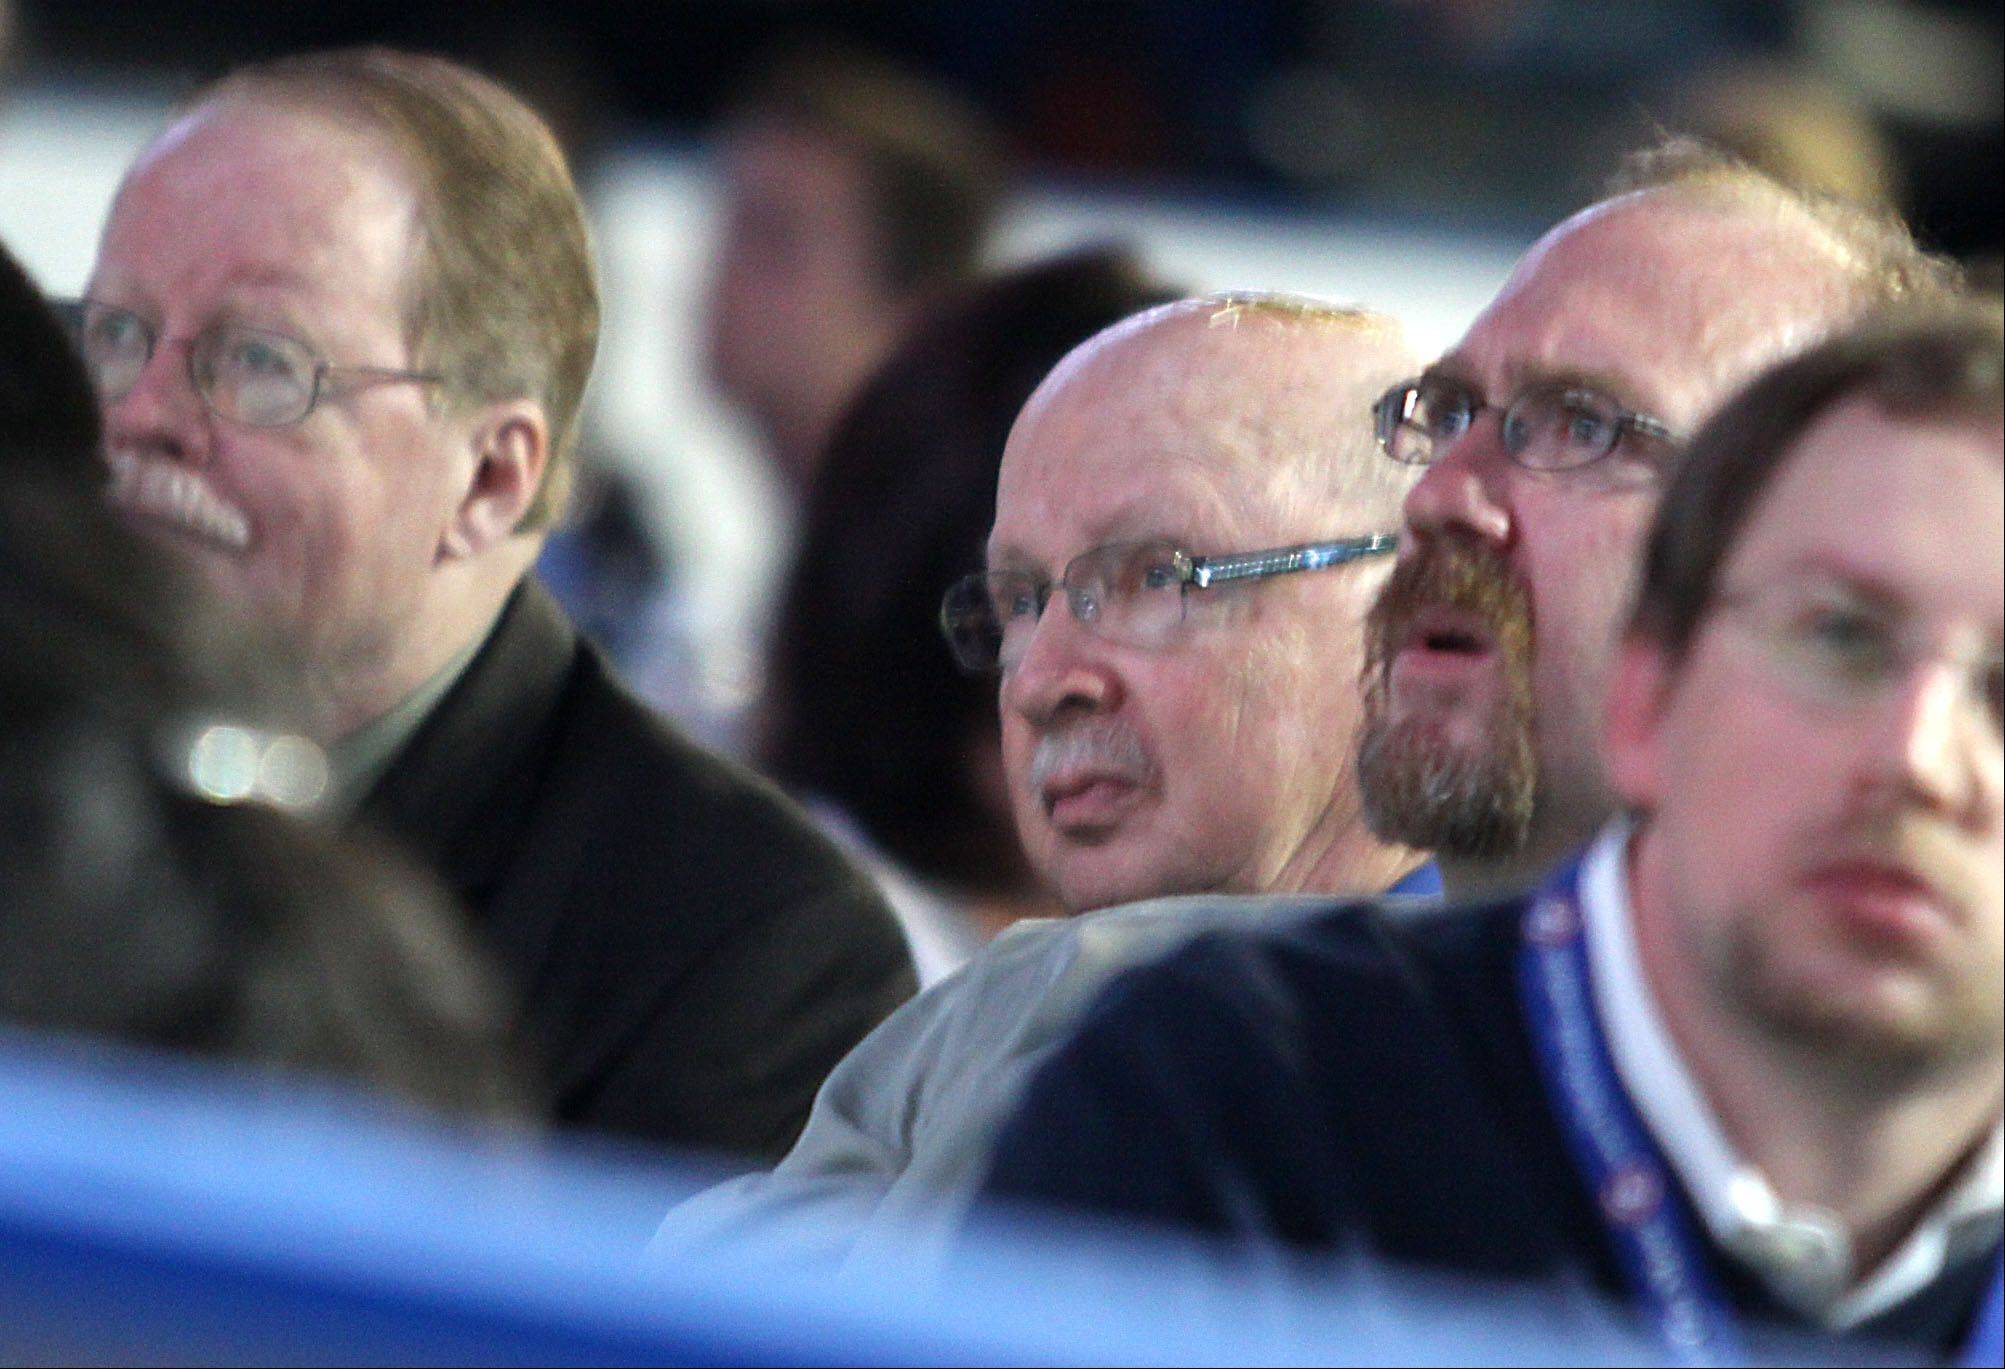 From left, Daily Herald Sports Editor Tom Quinlan, retired Prep Sports Editor Bob Frisk, and Prep Sports Editor Aaron Gabriel participate during the Daily Herald Prep Sports Excellence Awards Ceremony at Sears Centre Arena in Hoffman Estates on Sunday.